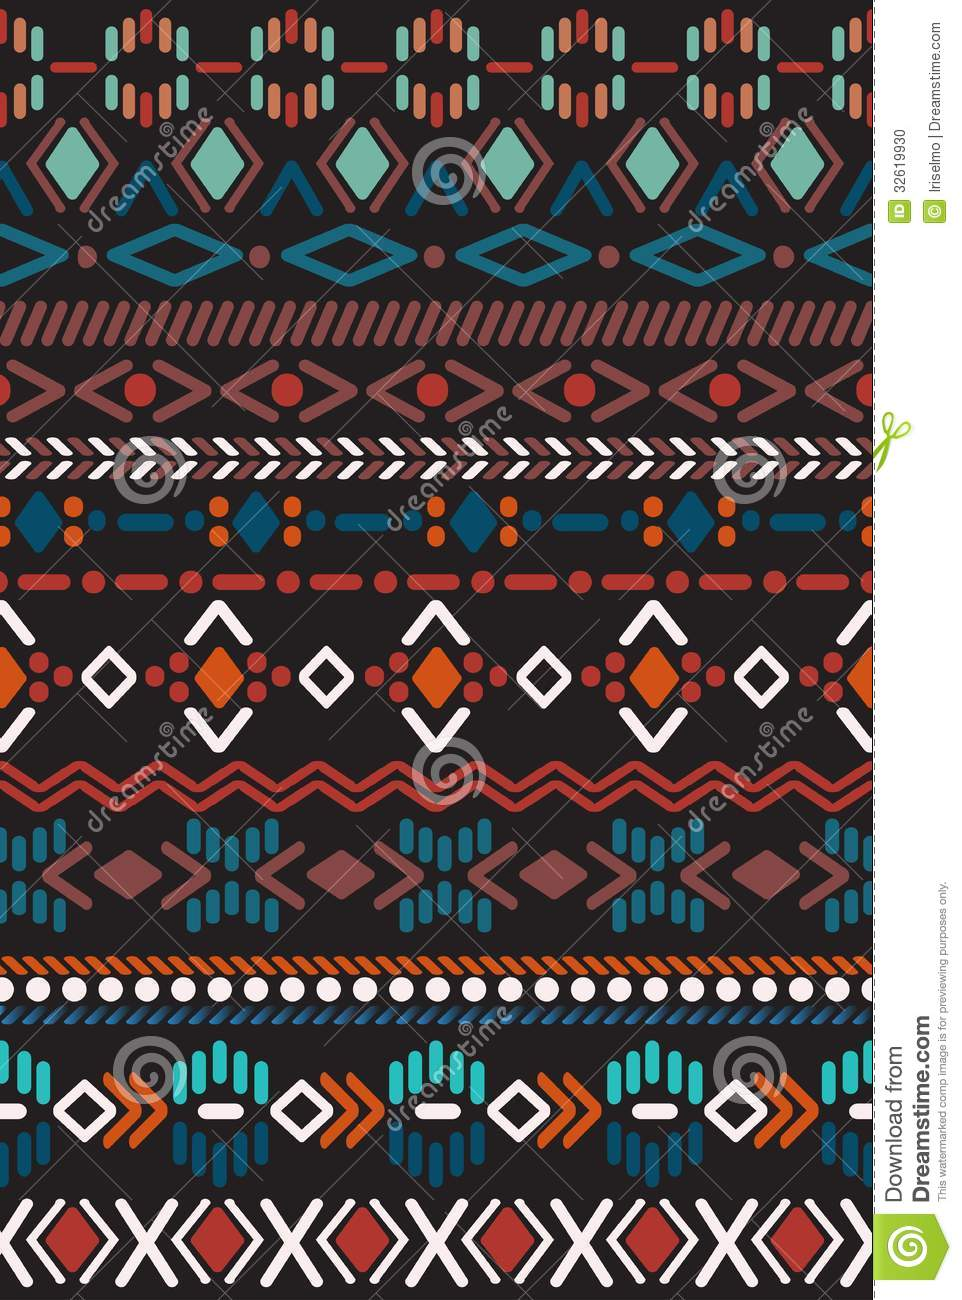 Native American Design Wallpaper : Seamless pattern in aztec style stock photo image